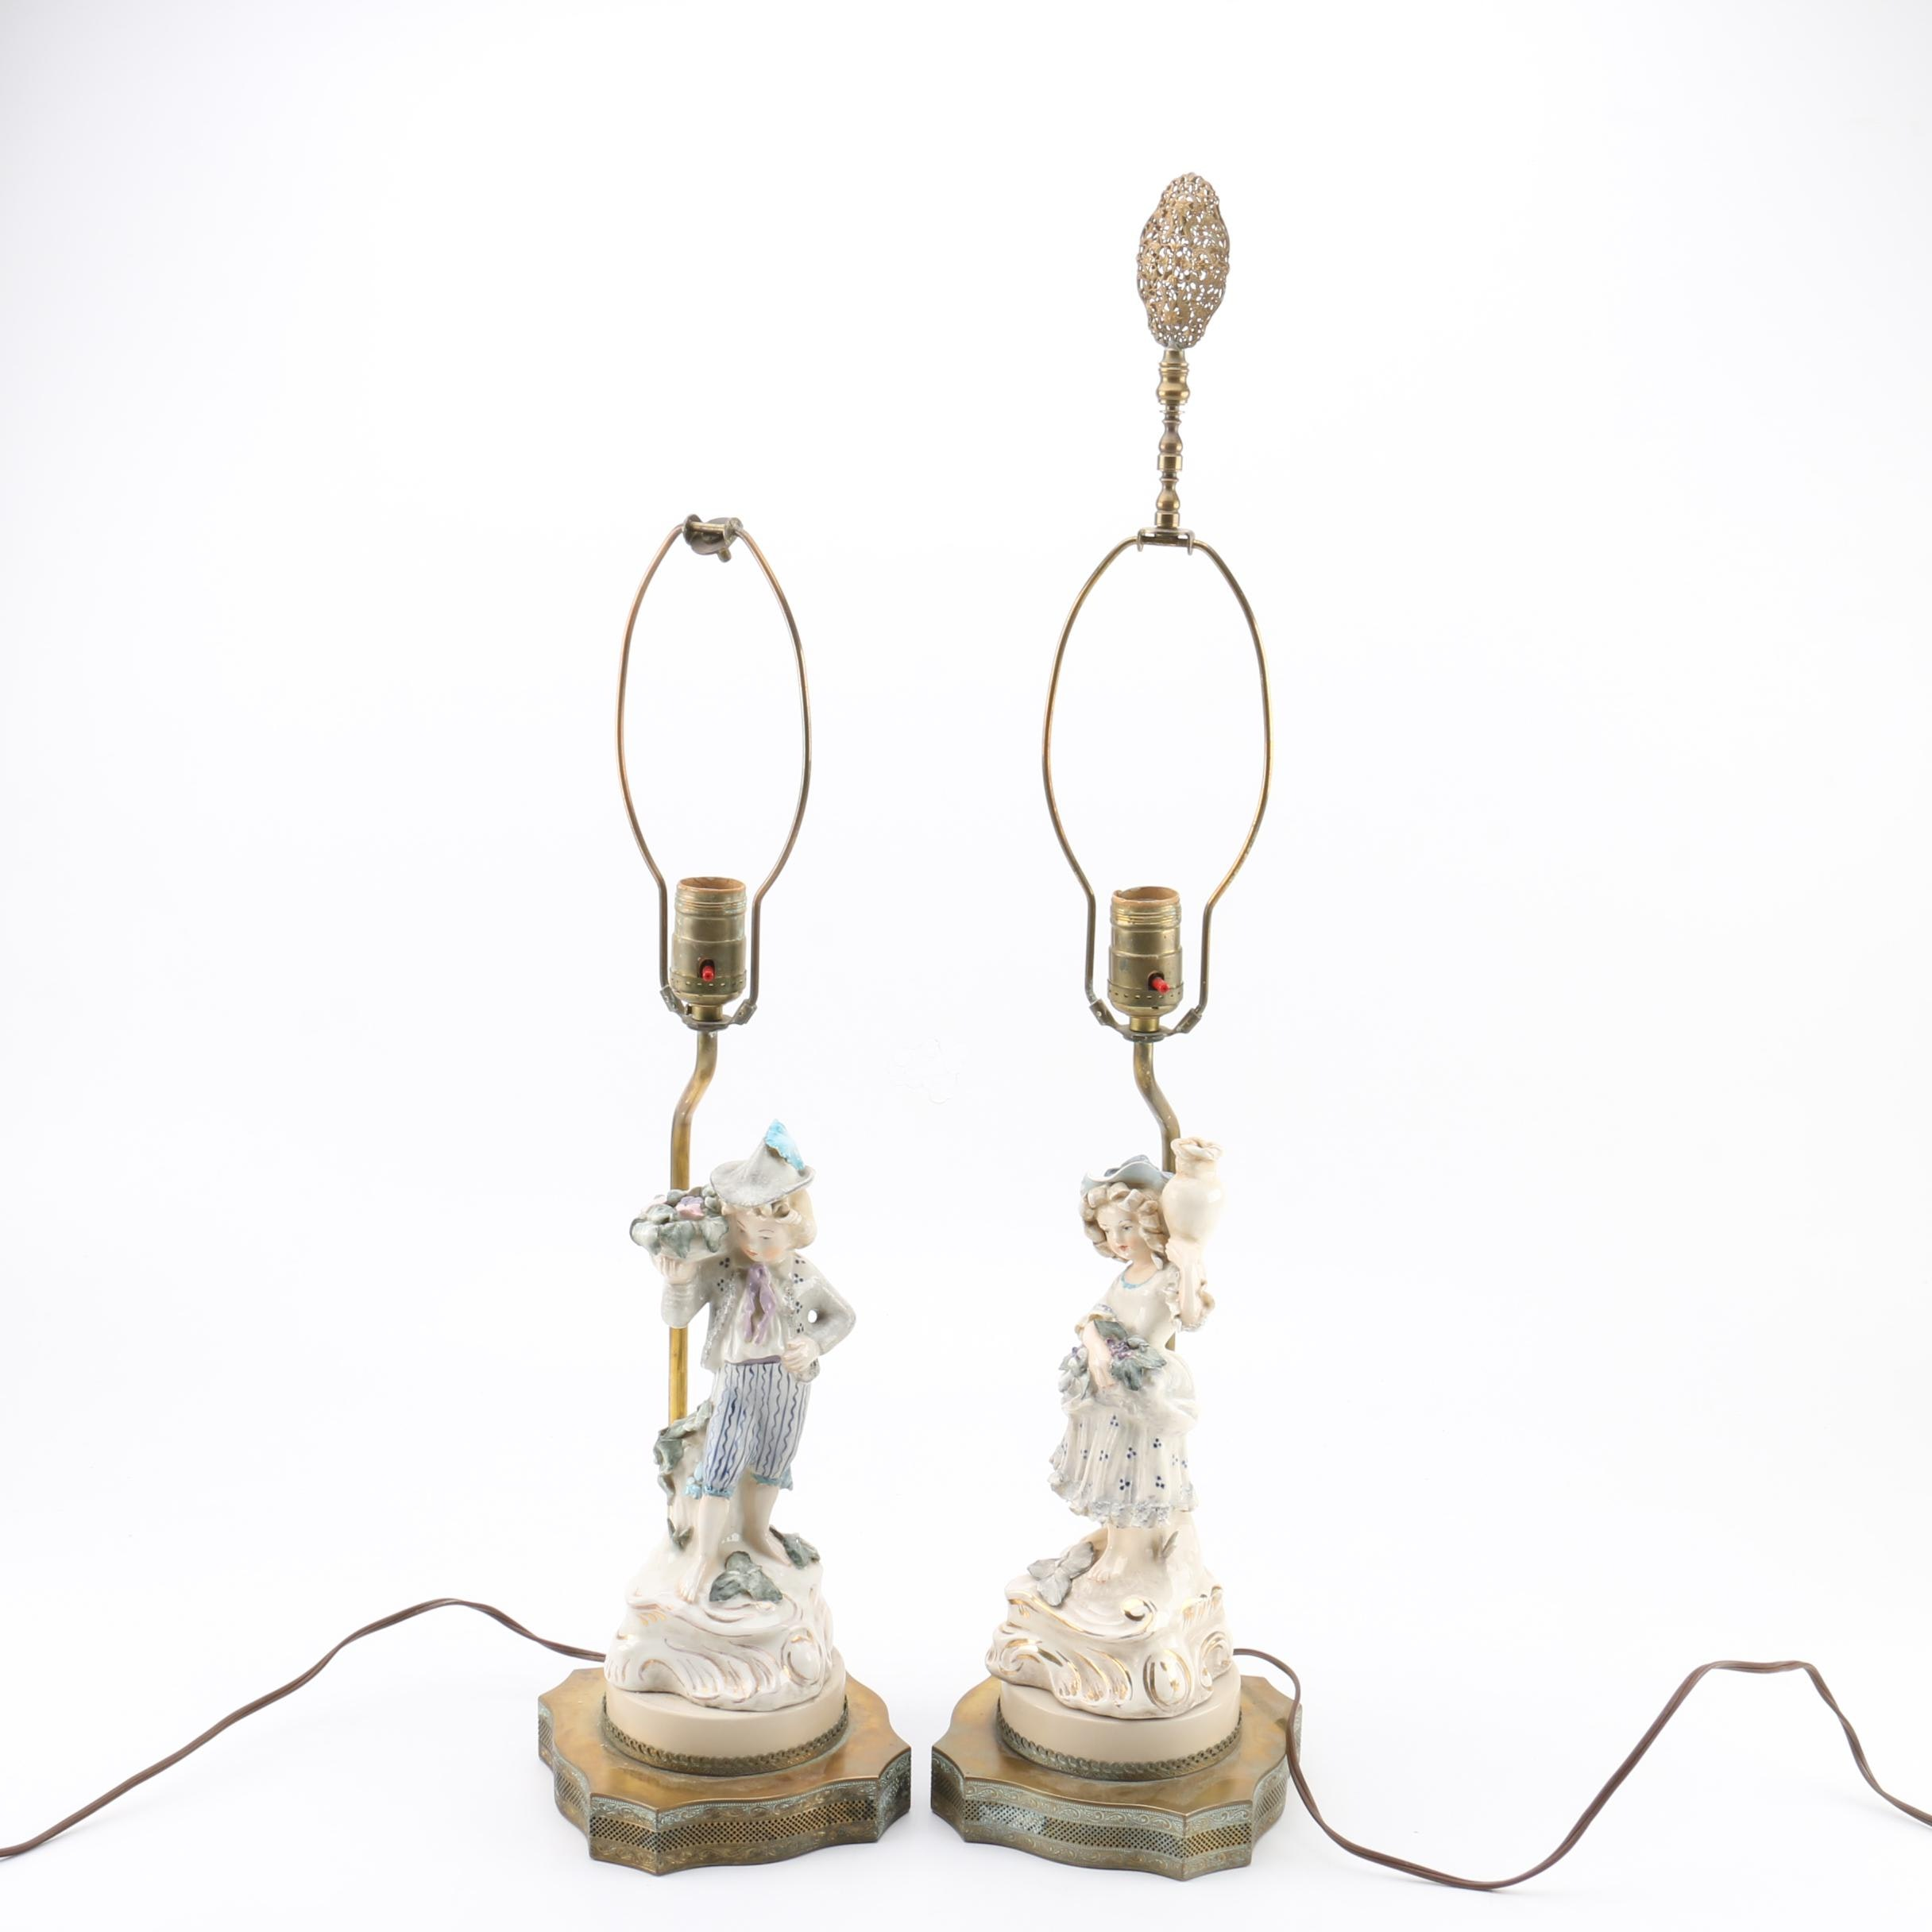 Vintage Figurative Porcelain and Brass Table Lamps